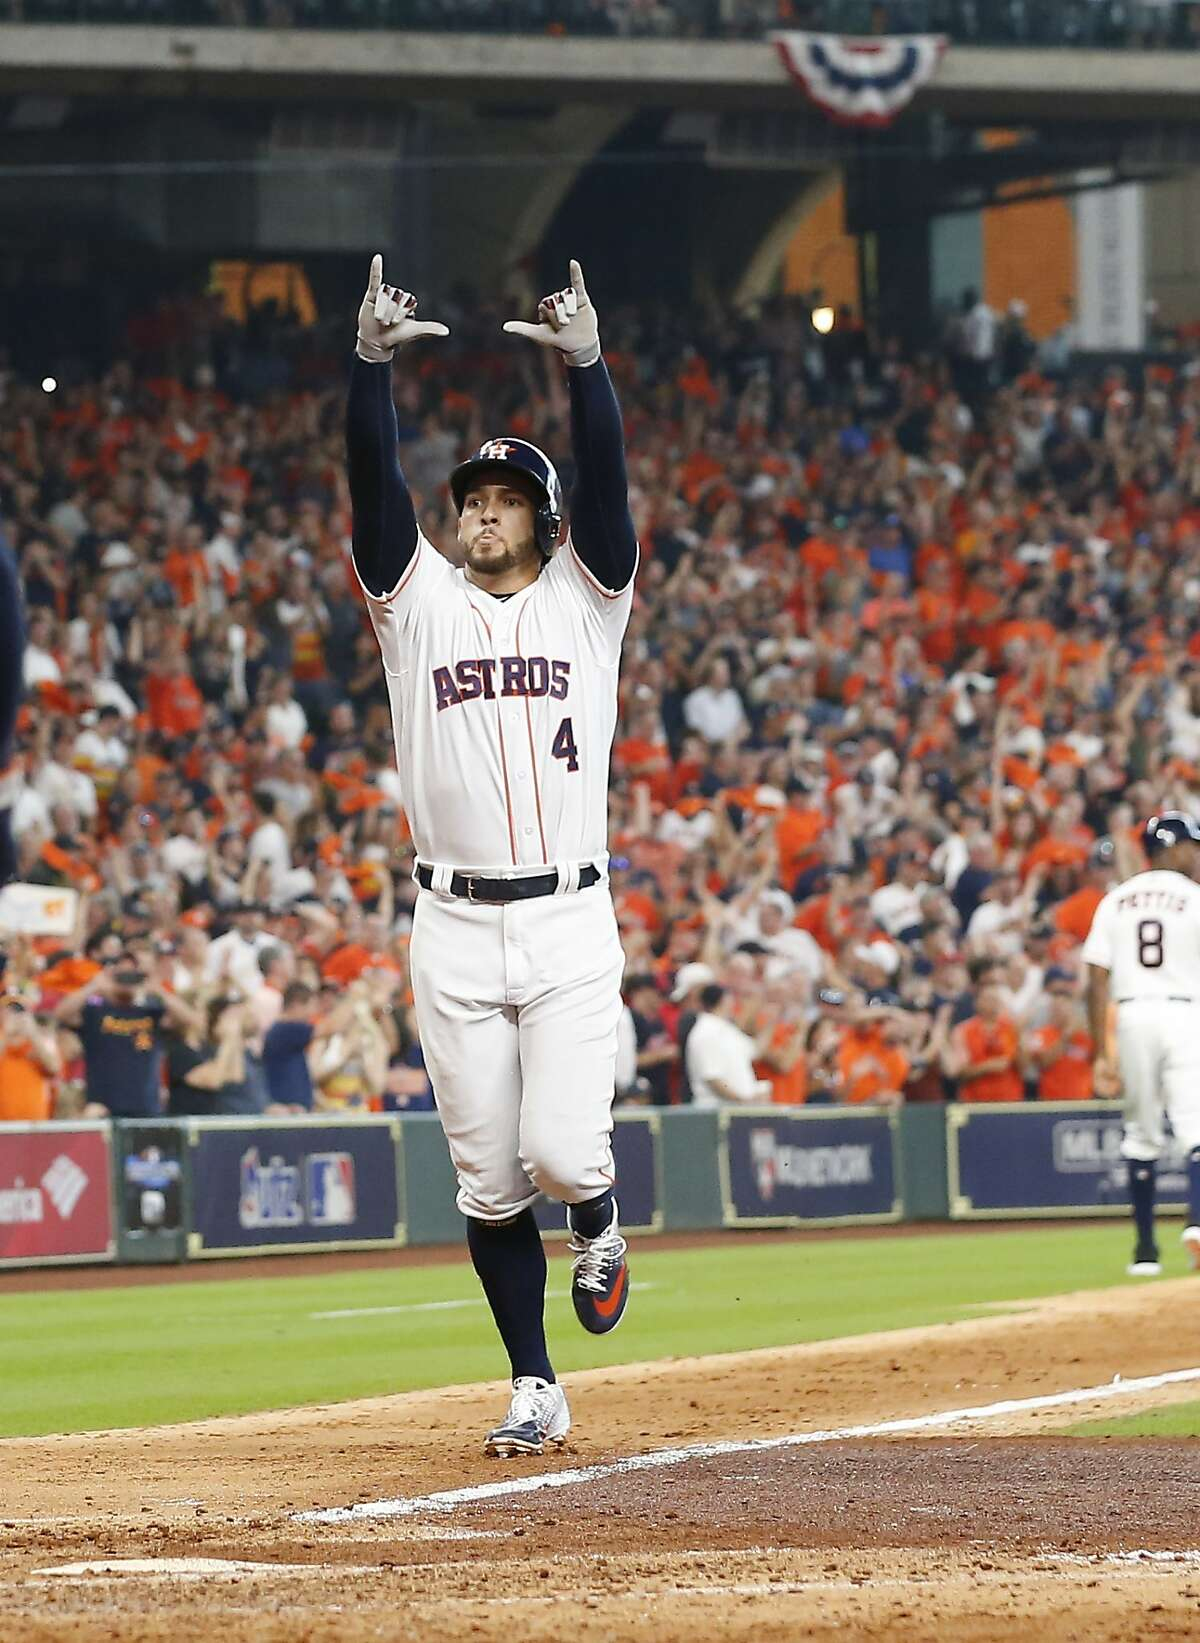 Houston Astros outfielder George Springer (4) celebrates a fifth inning home run in Game 1 of the American League Division Series at Minute Maid Park on Friday, Oct. 5, 2018, in Houston.